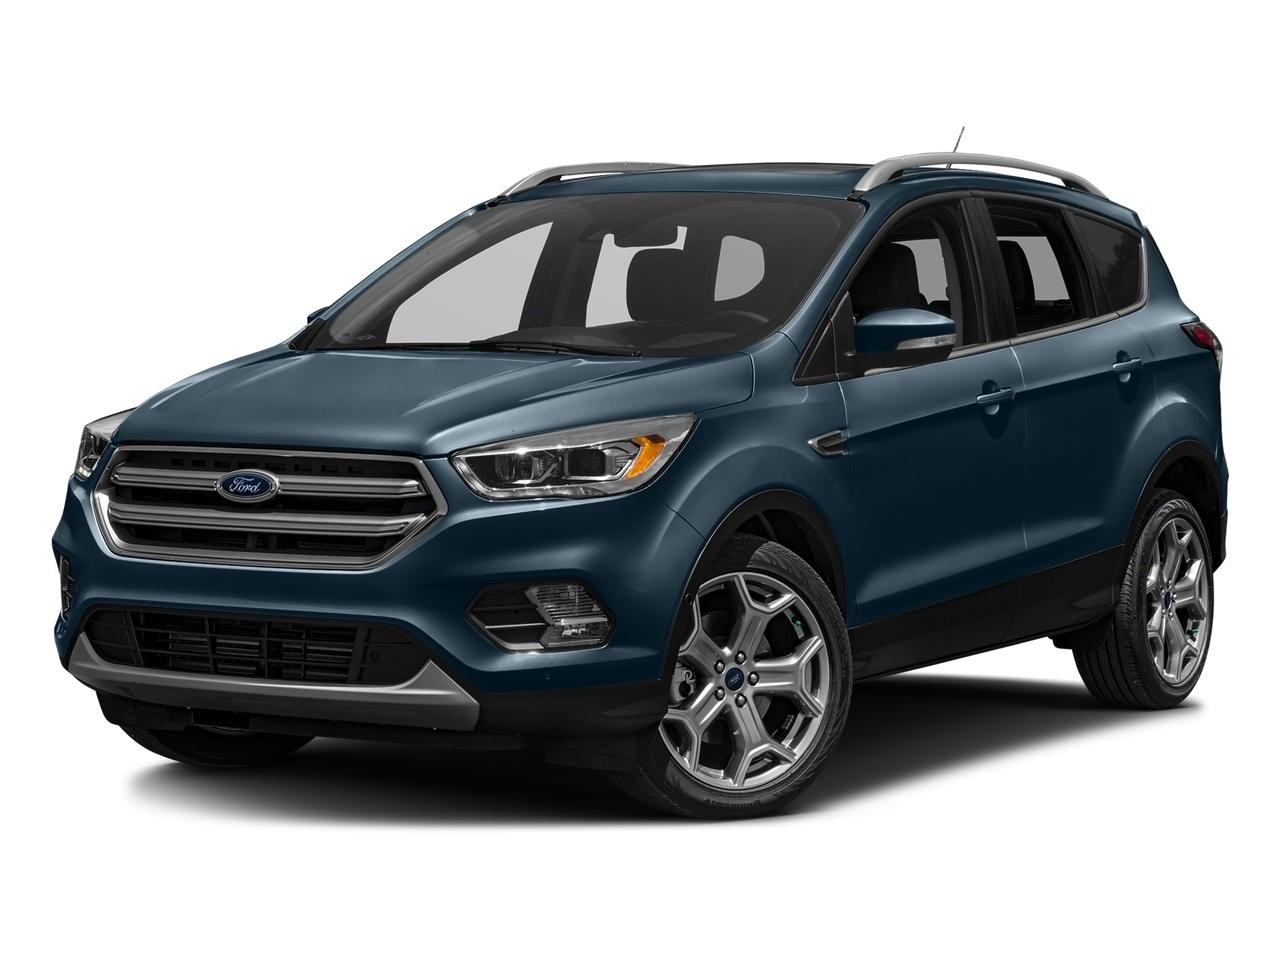 2018 Ford Escape Vehicle Photo in Souderton, PA 18964-1038